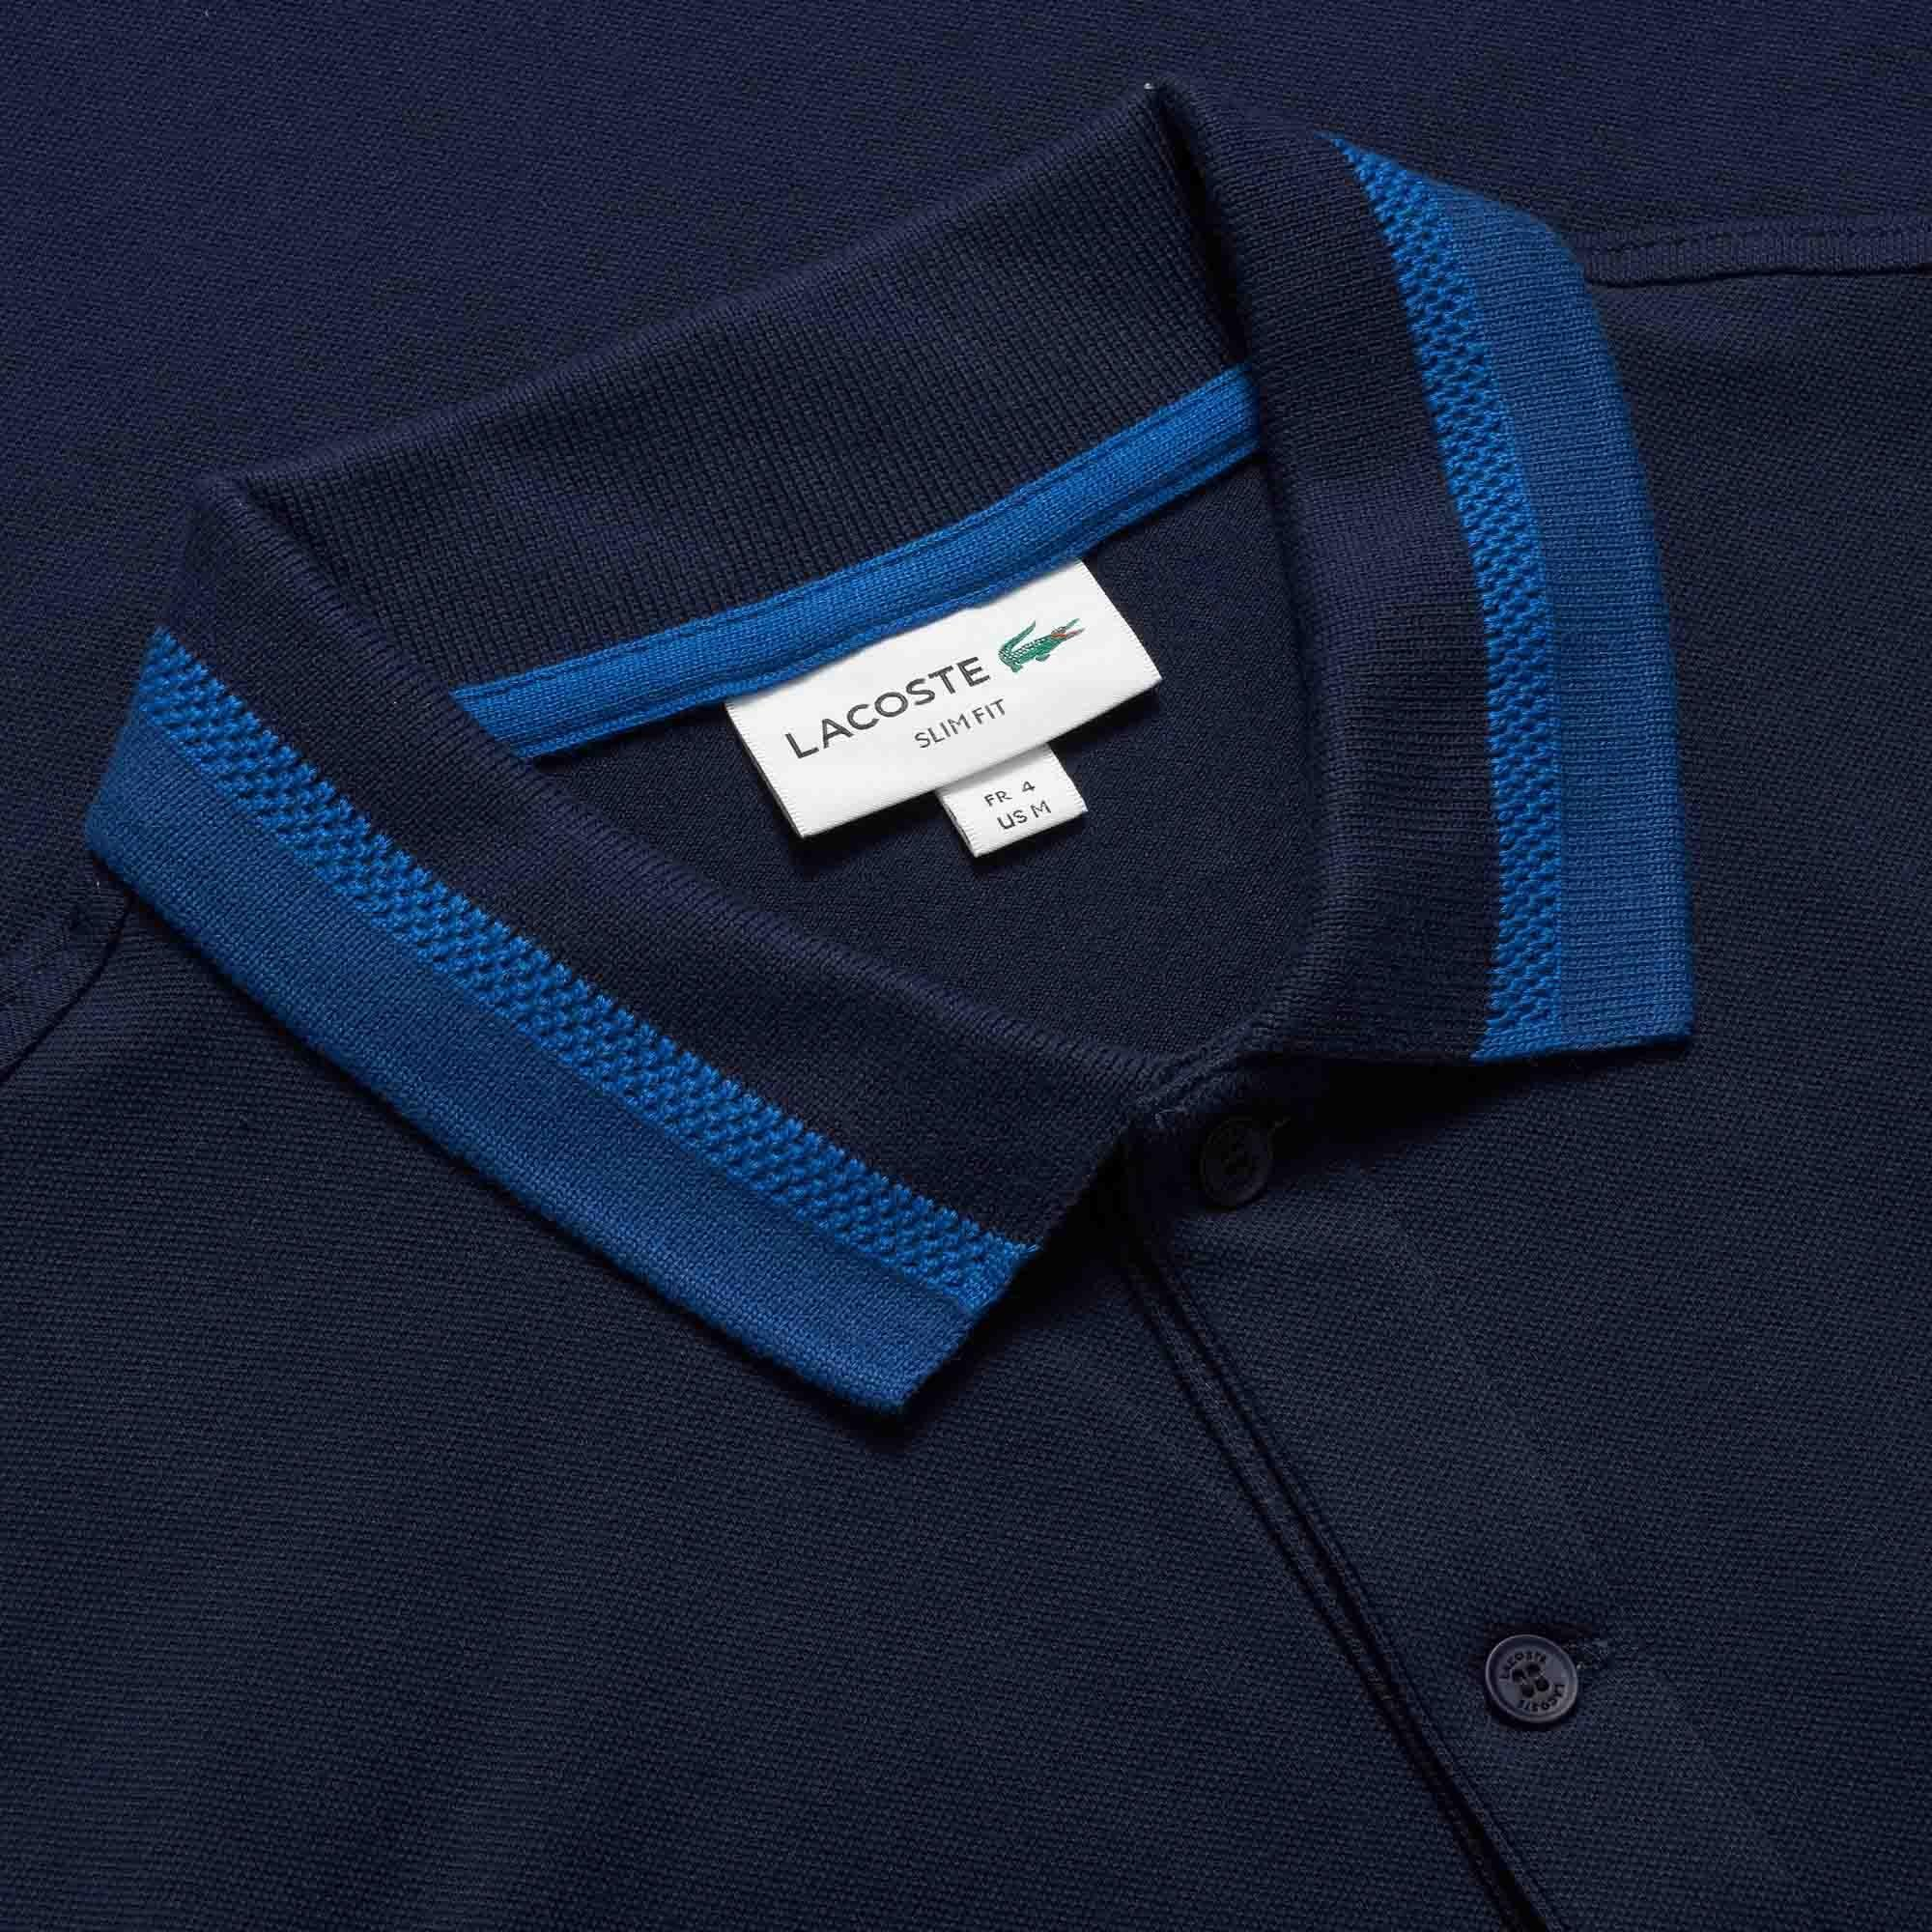 a3014abdacd Lacoste - Blue Marine Slim Fit Stretch Pima Pique Polo Shirt for Men -  Lyst. View fullscreen